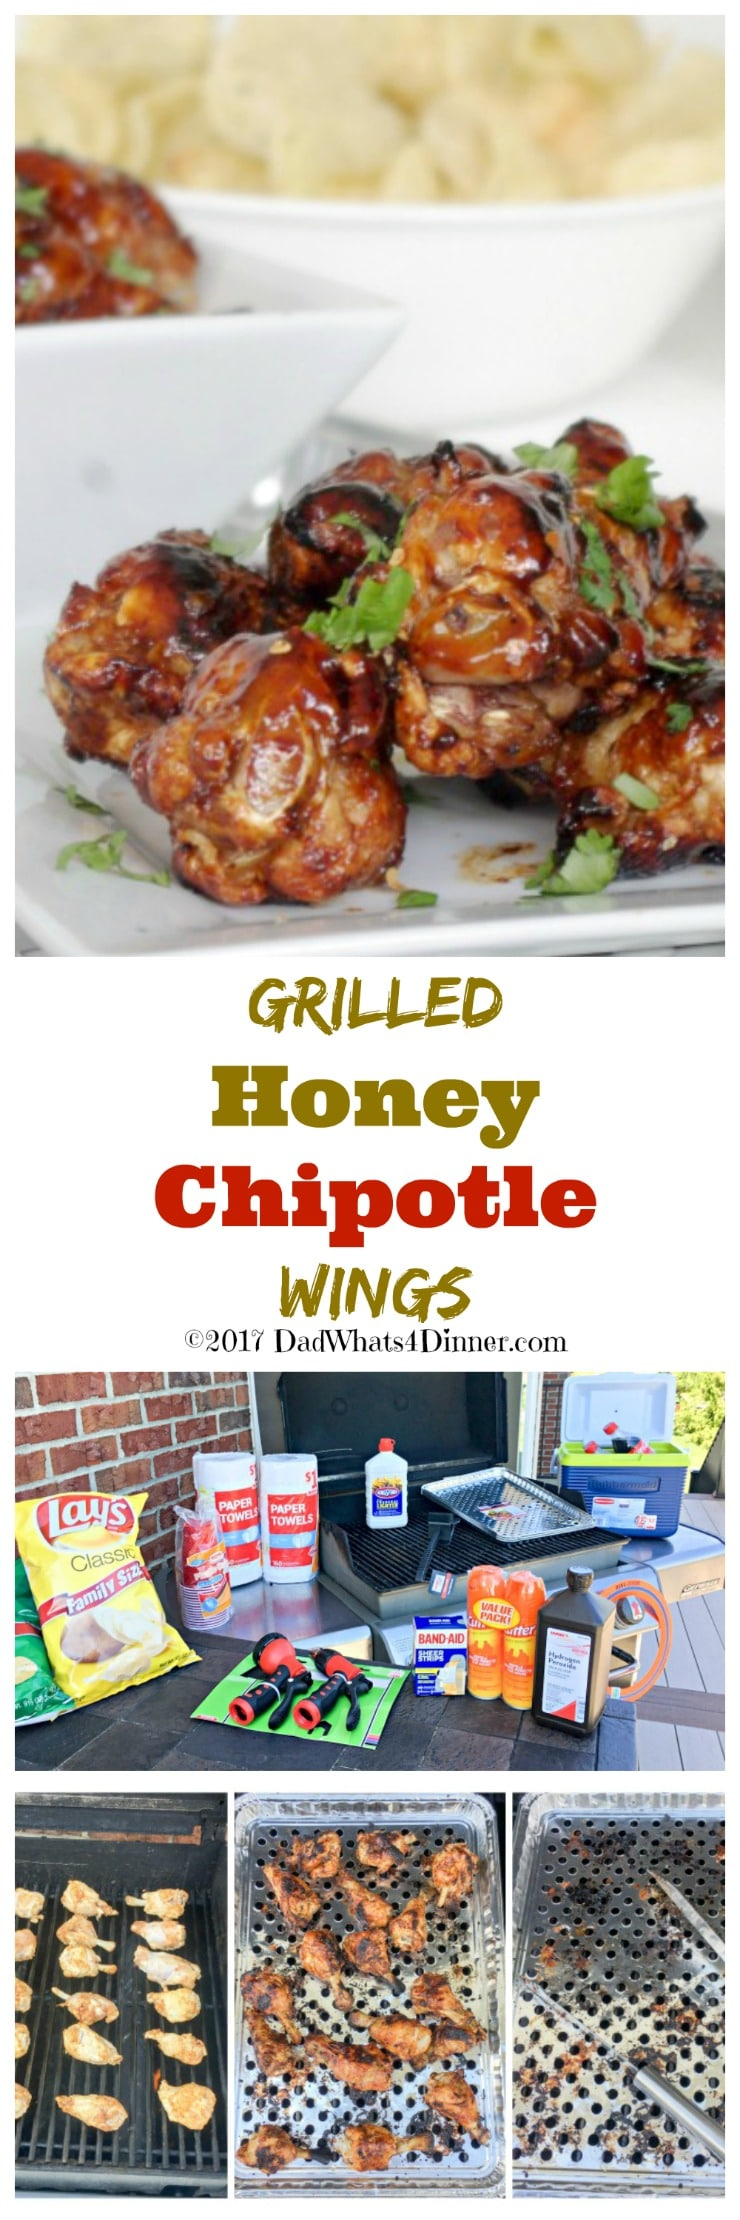 It is time to get your home ready for summer and keep the grill fired up by making these Grilled Honey Chipotle Wings. Sweet with a little heat! #ad @familydollar #Barbeque #BBQ #Grilling #Food #Summer #delicious www.dadwhats4dinner.com